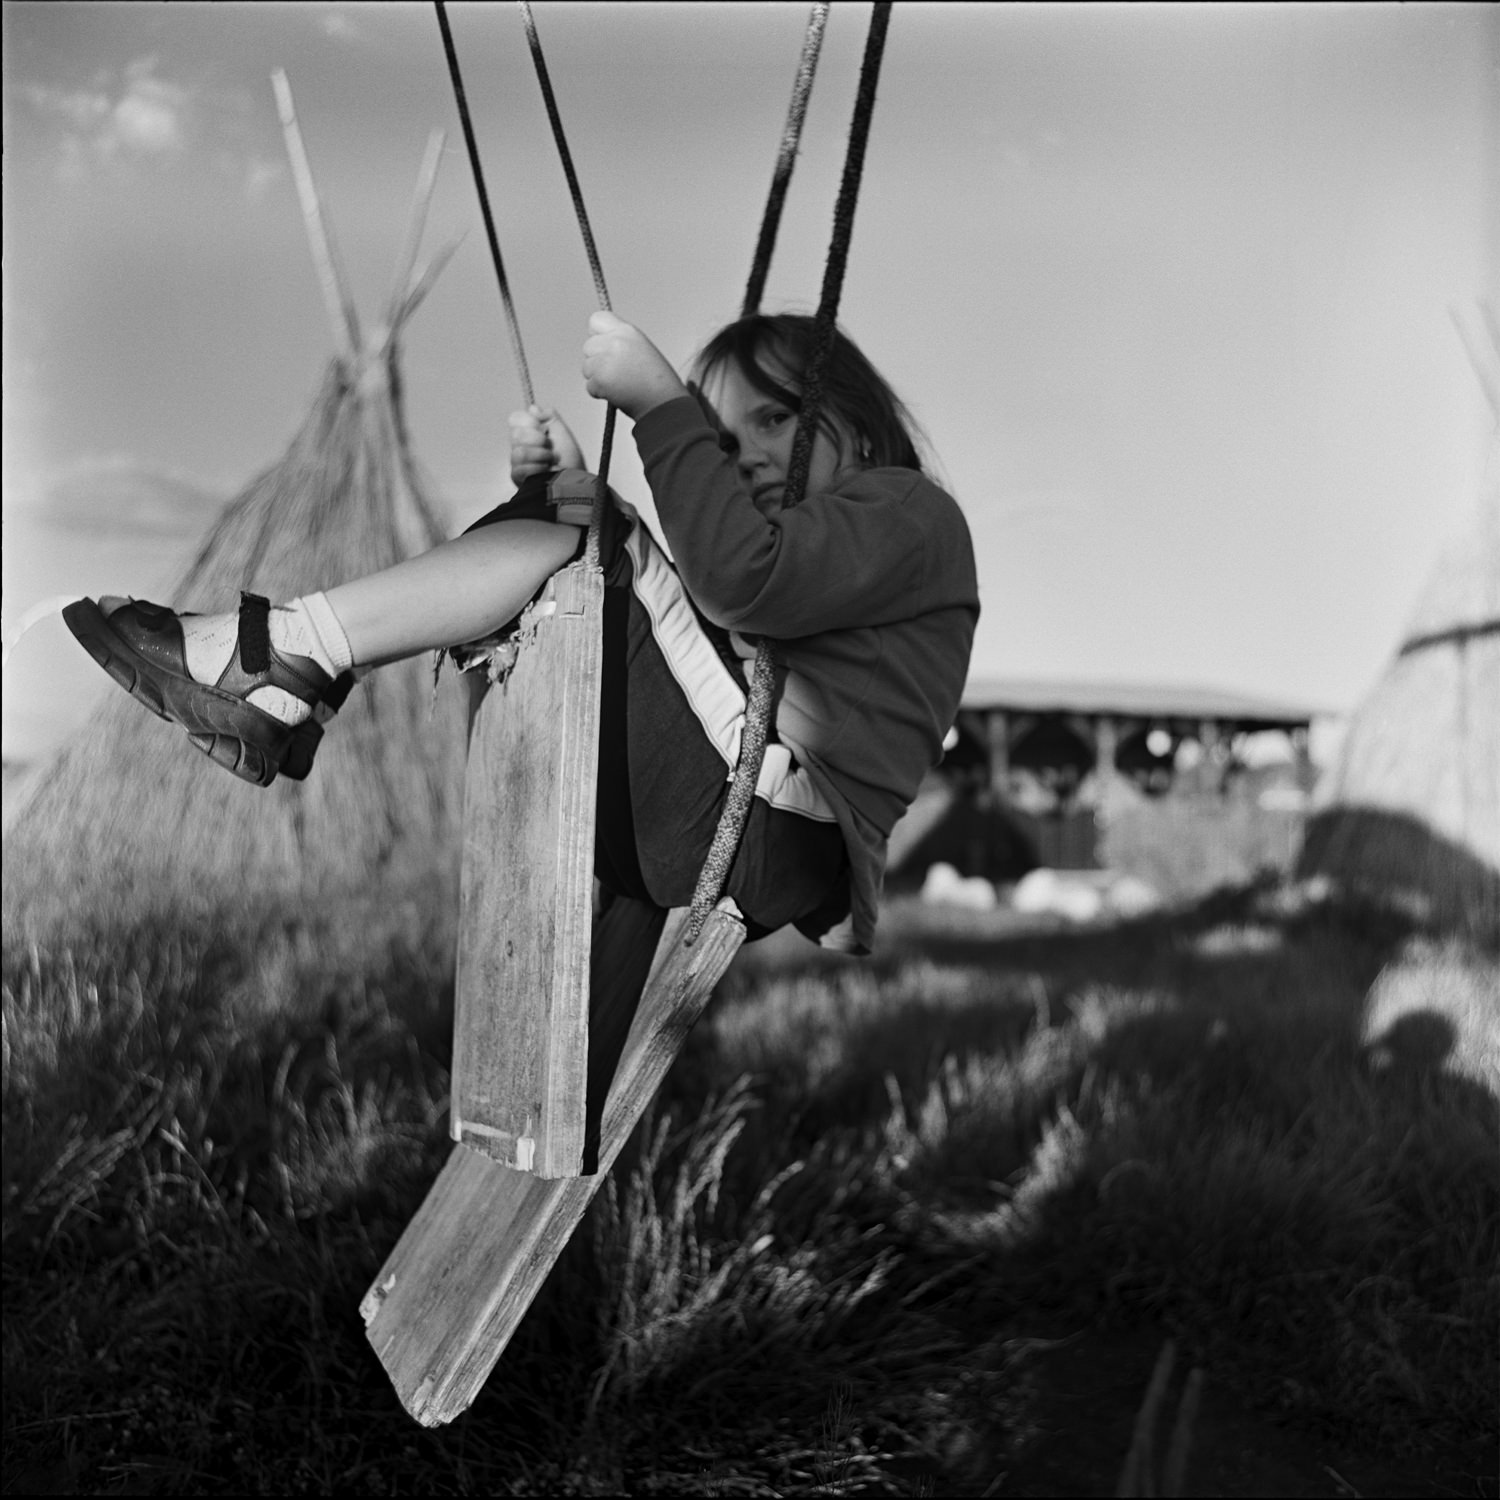 Black-and-white portrait photo of cute girl on broken swing with ropes in countryside rancho medium format film